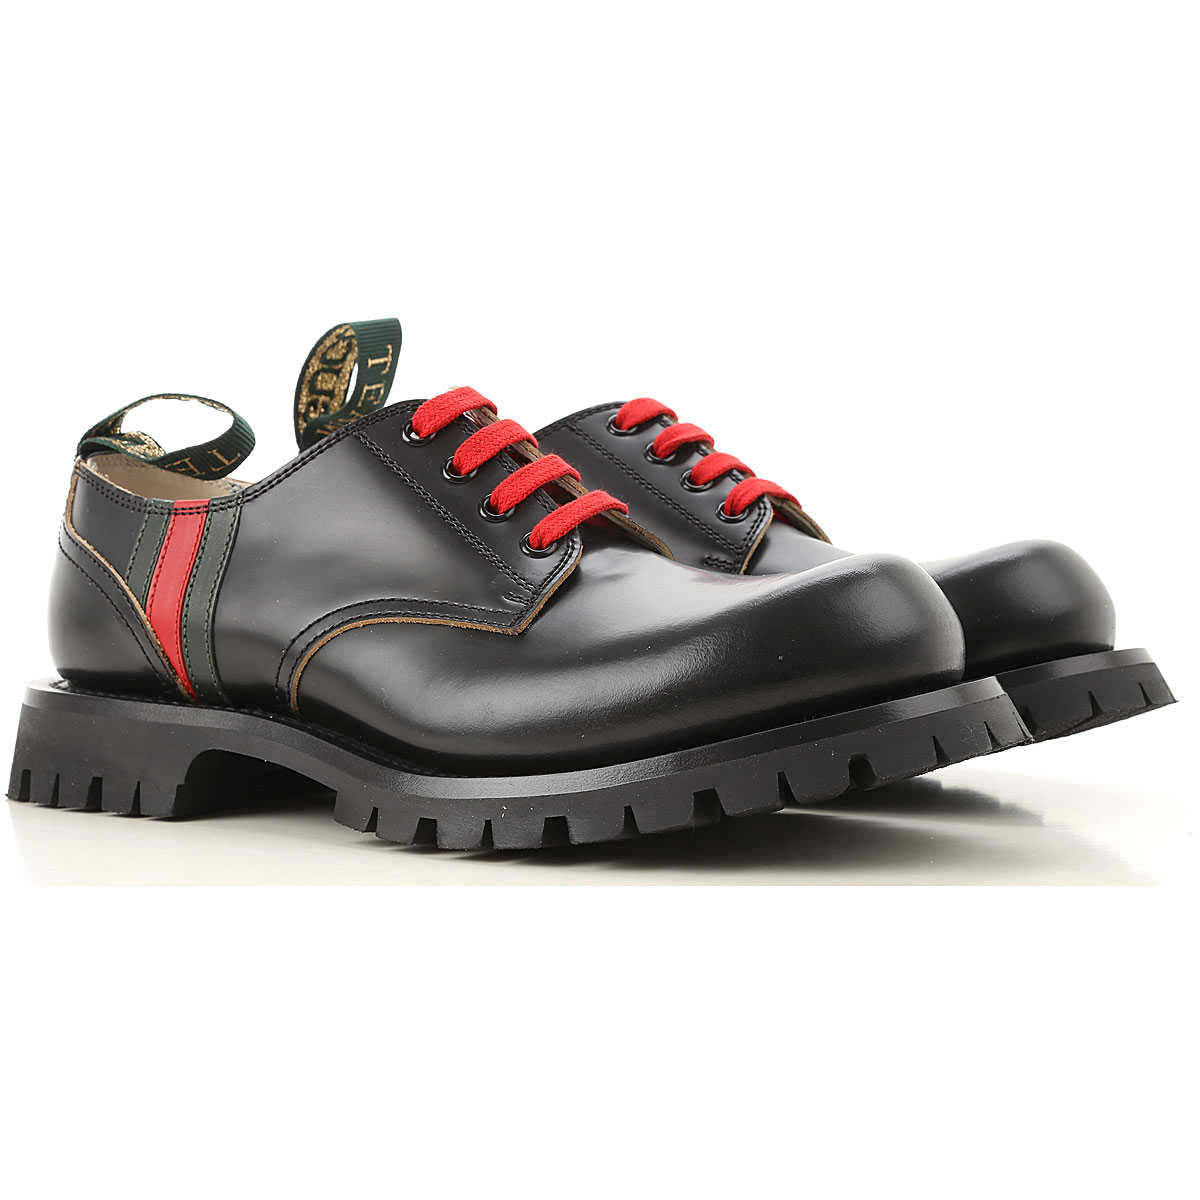 Gucci Lace Up Shoes for Men Oxfords